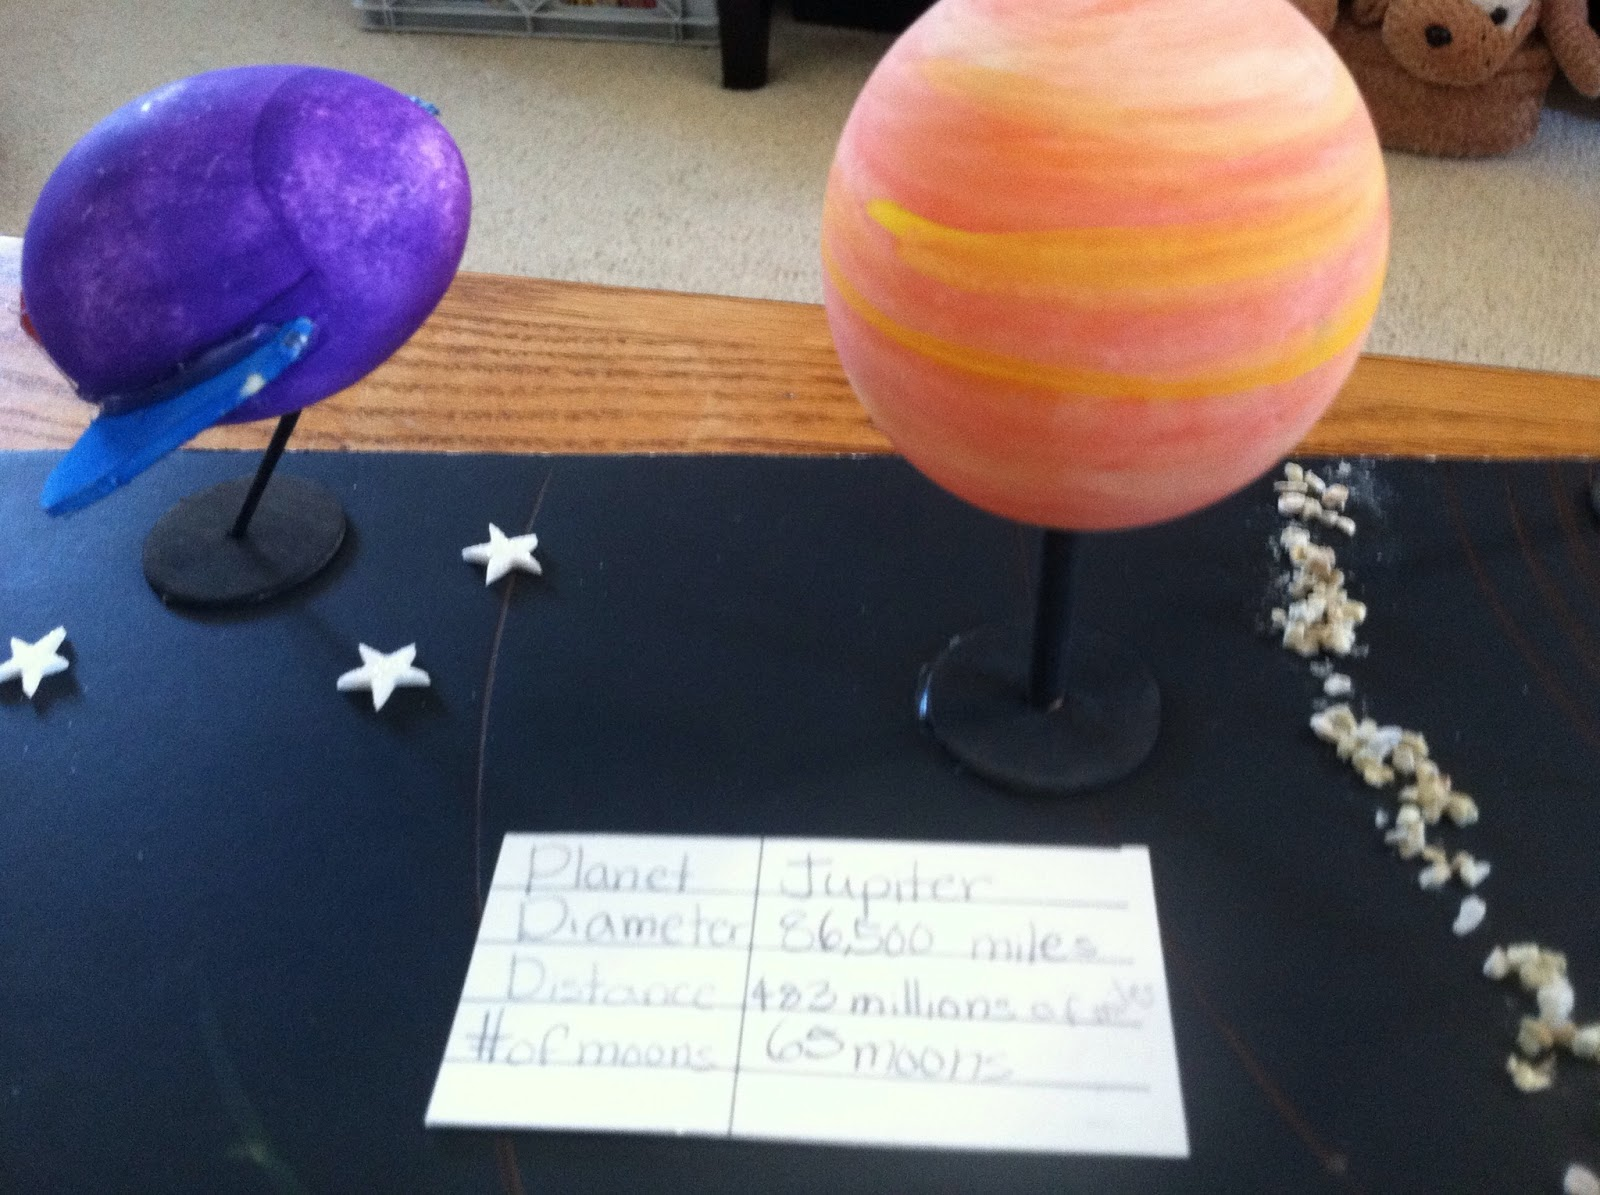 Planet Jupiter Project Ideas (page 3) - Pics about space